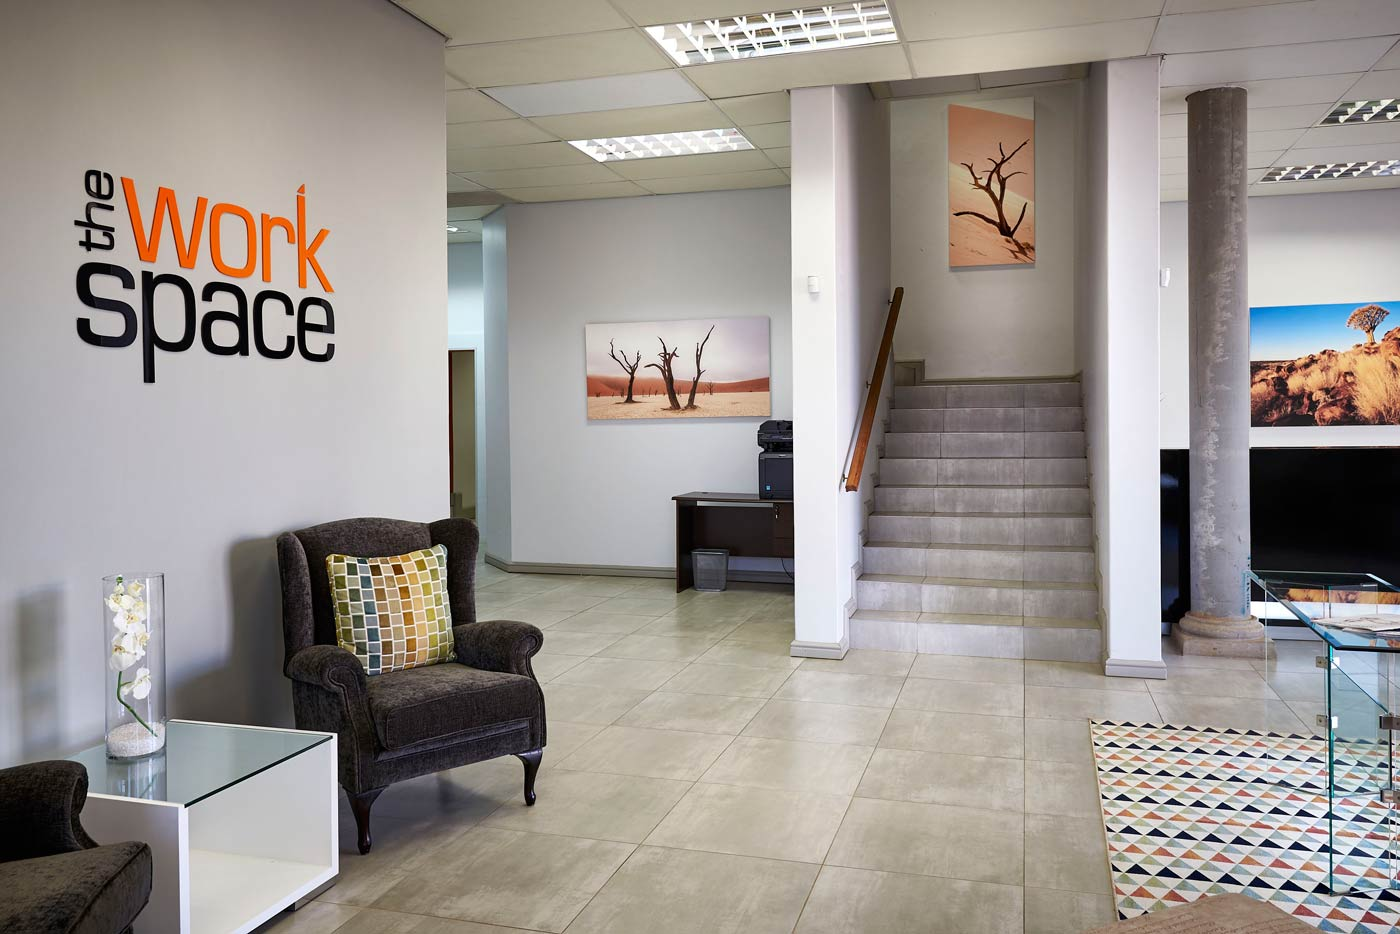 Office space to rent in Centurion - The Workspace Centurion